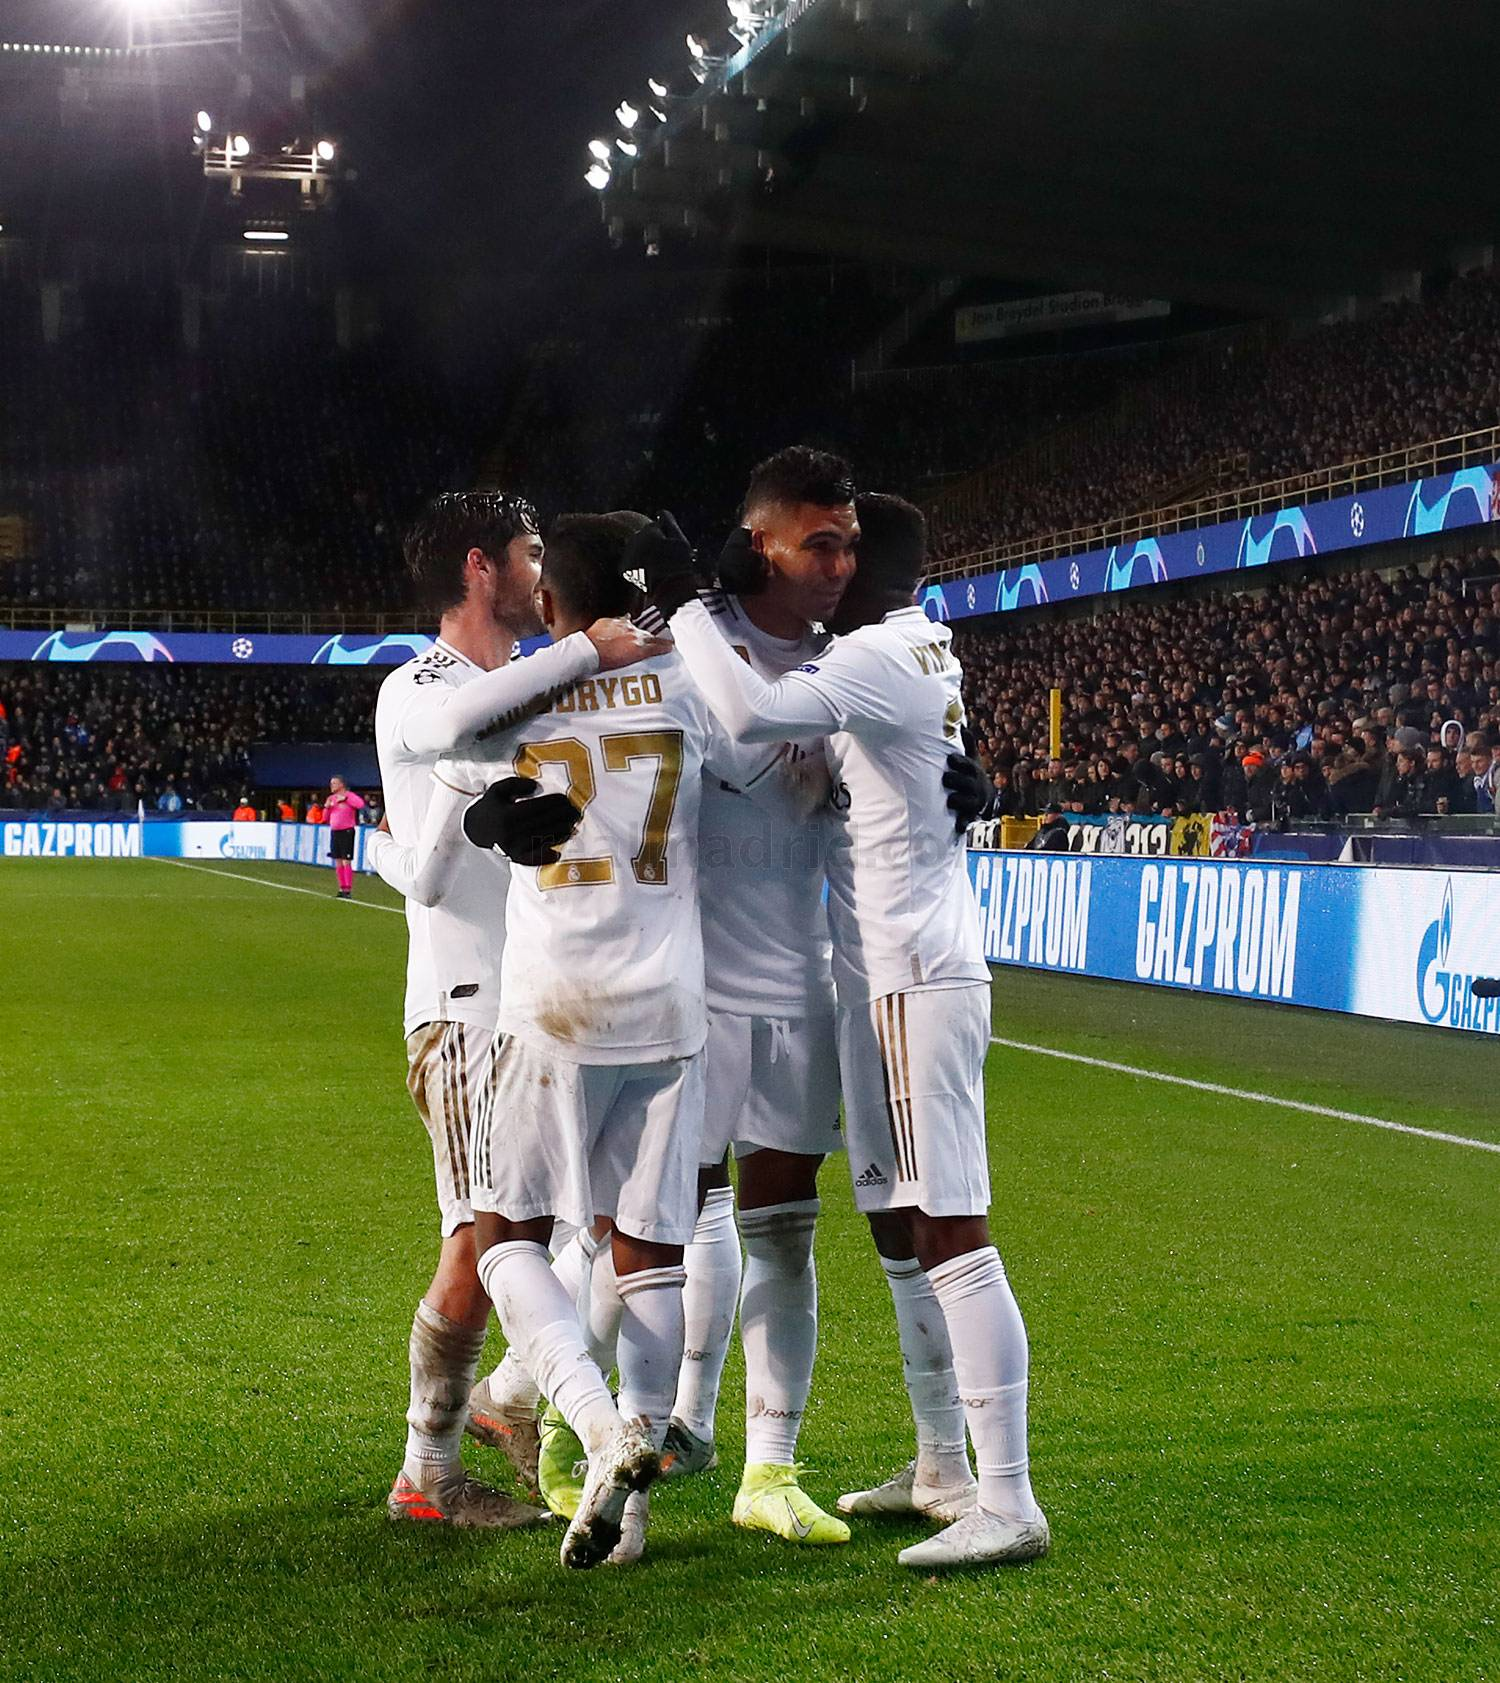 Real Madrid - Brujas - Real Madrid - 11-12-2019